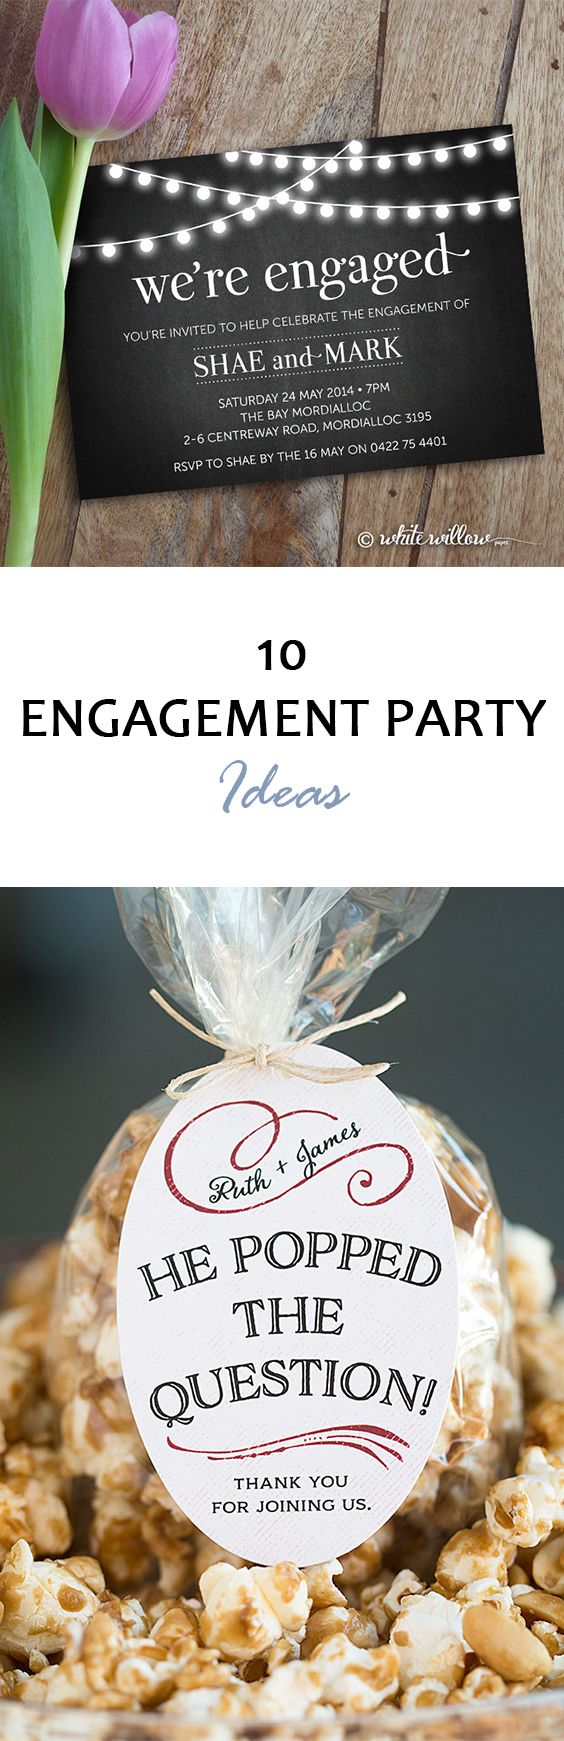 10 Engagement Party Ideas Last minute wedding gifts